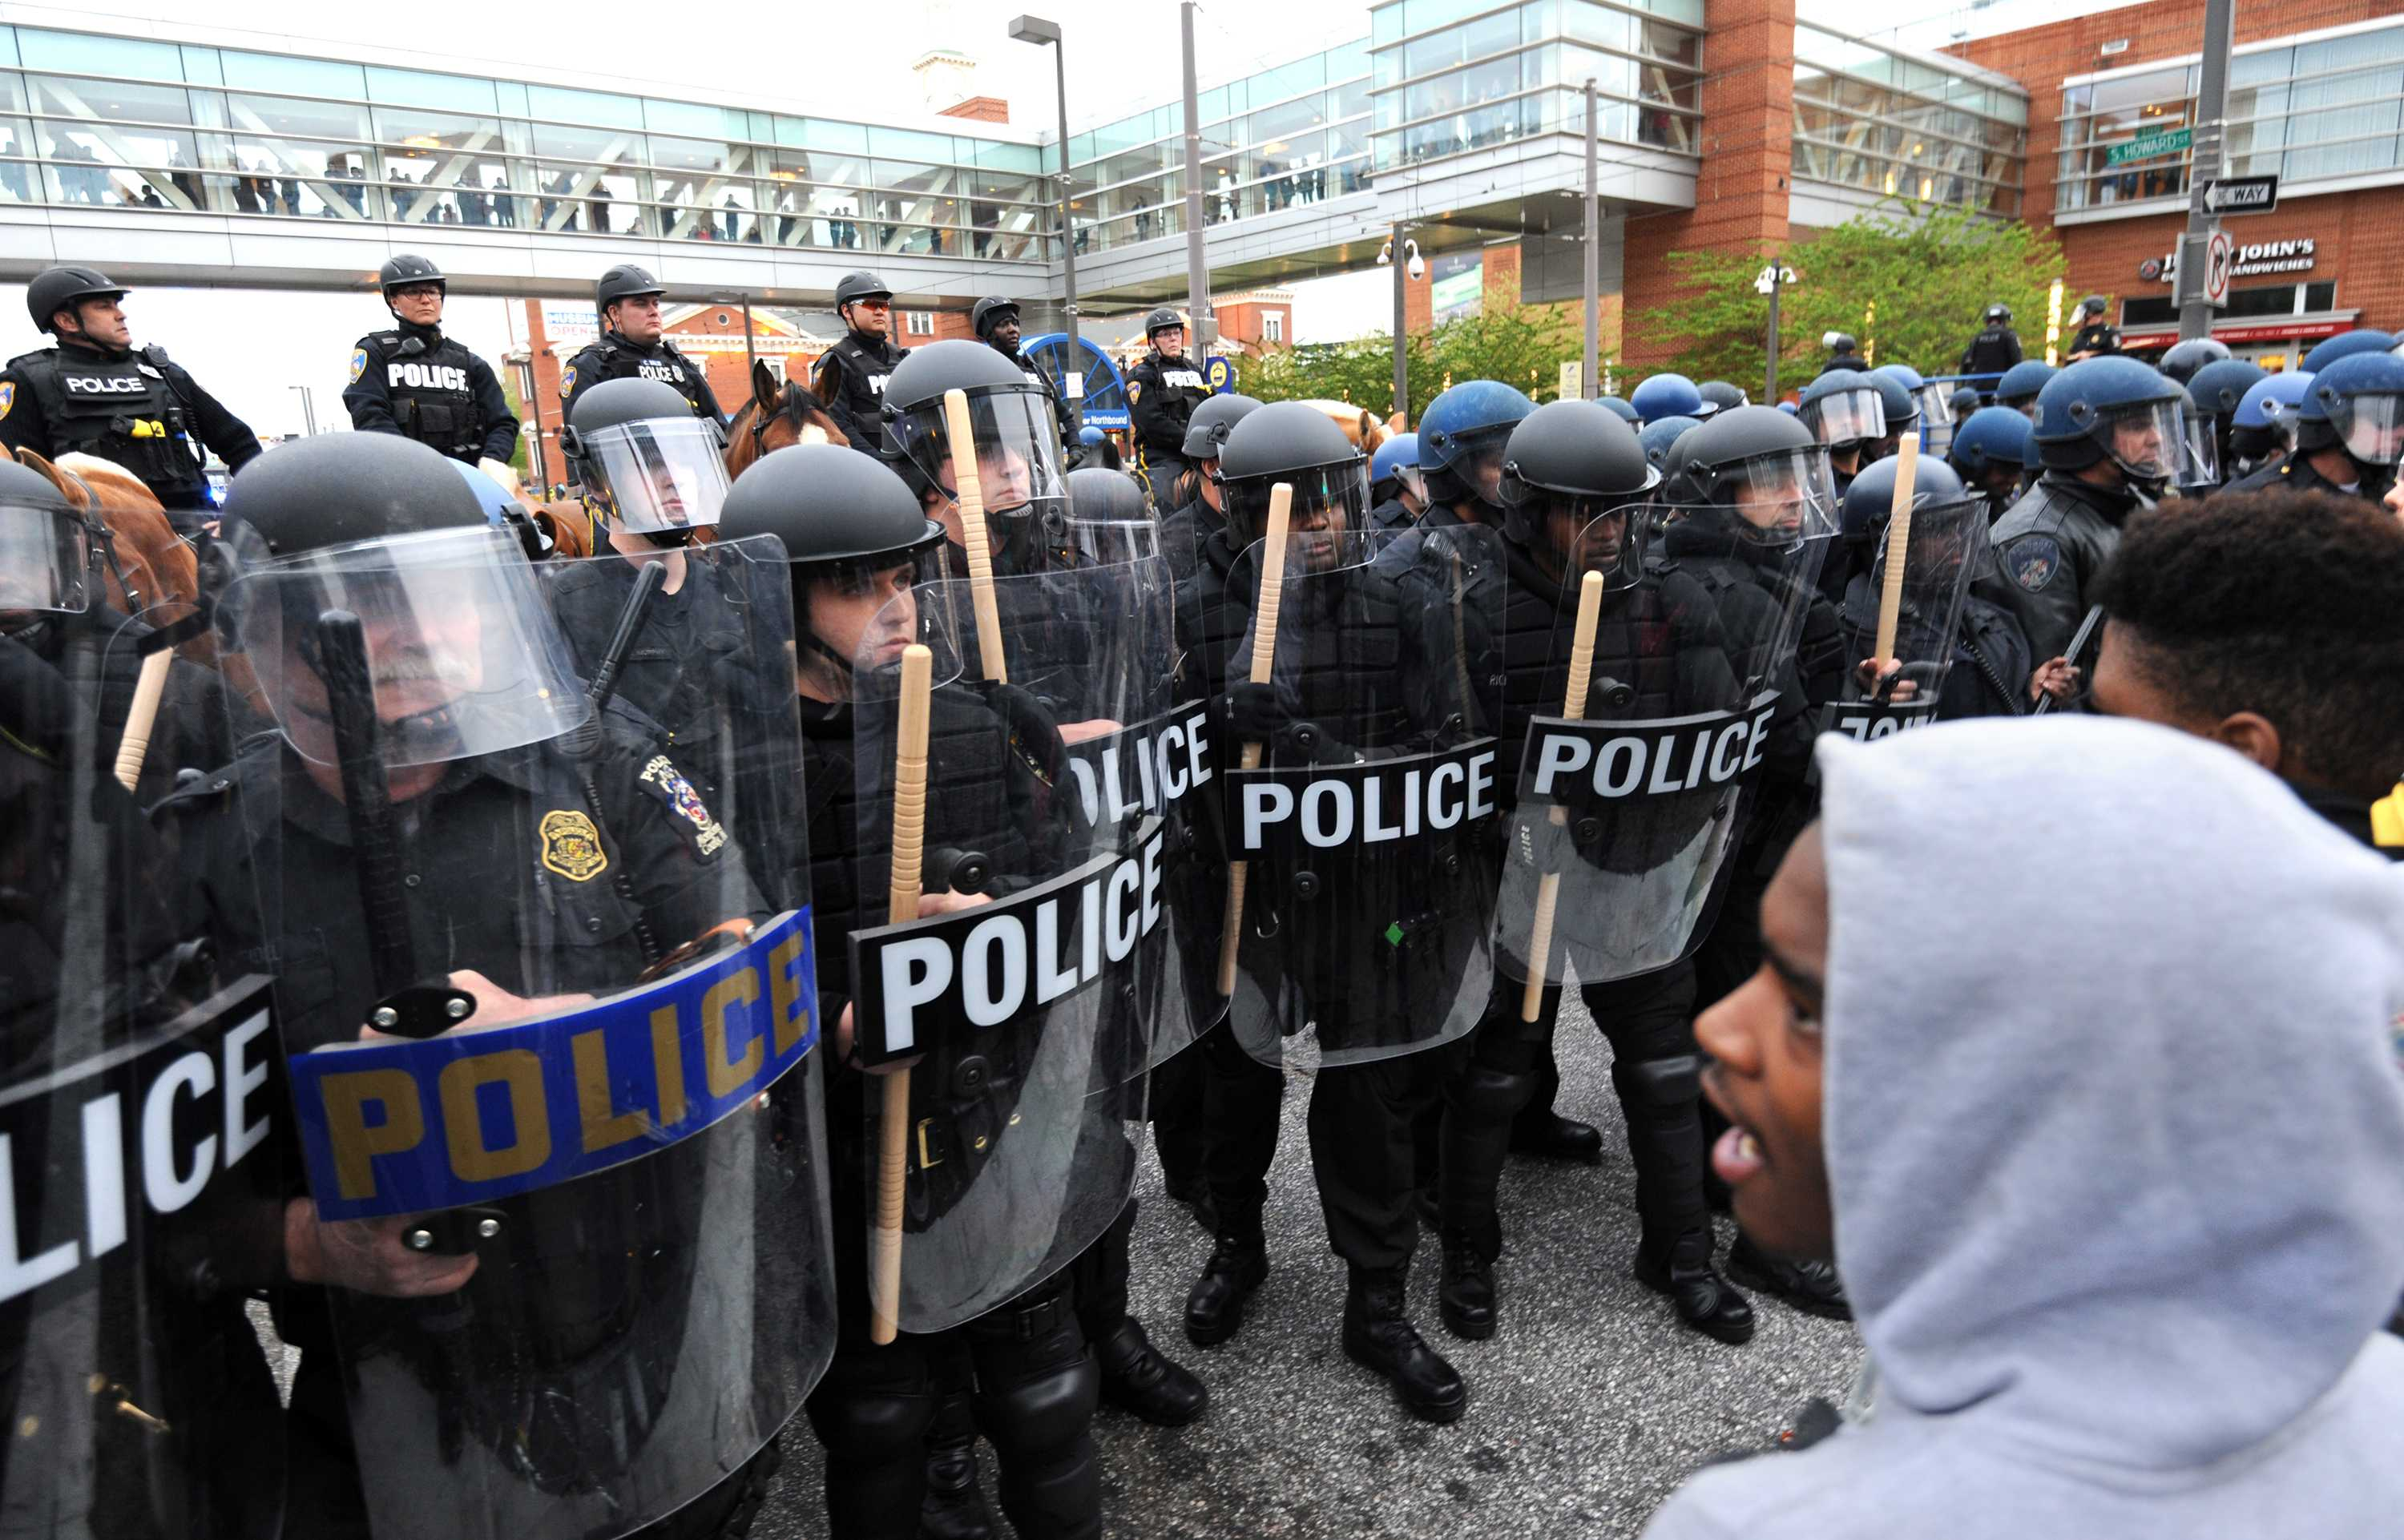 Police and protestors line up against each other across from Camden Yards in Baltimore on Saturday, April 25, 2015, as protests continue in the wake of Freddie Gray's death while in police custody. (Algerina Perna/Baltimore Sun/TNS)